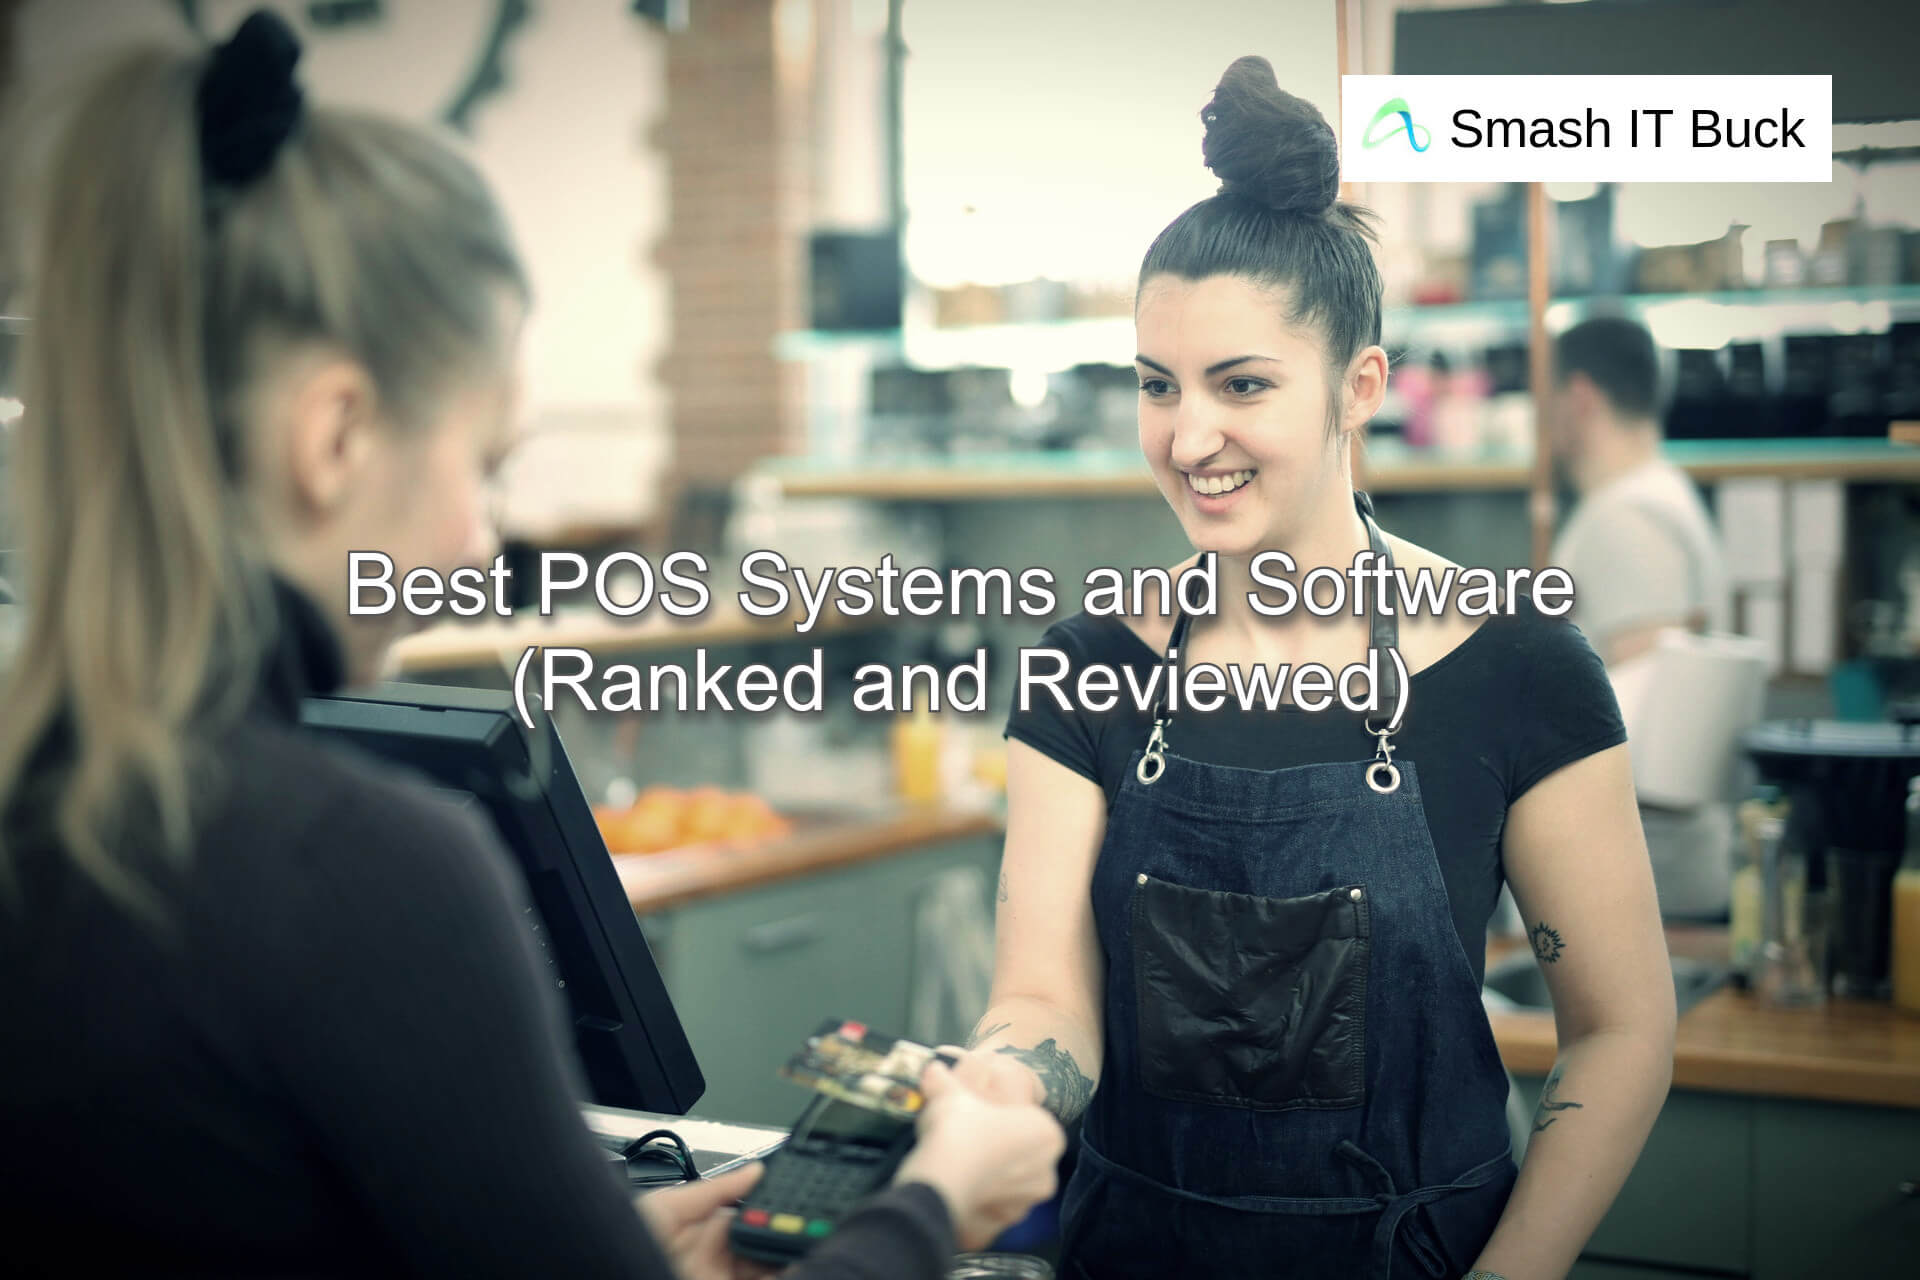 Best POS Systems & Software for business in 2021